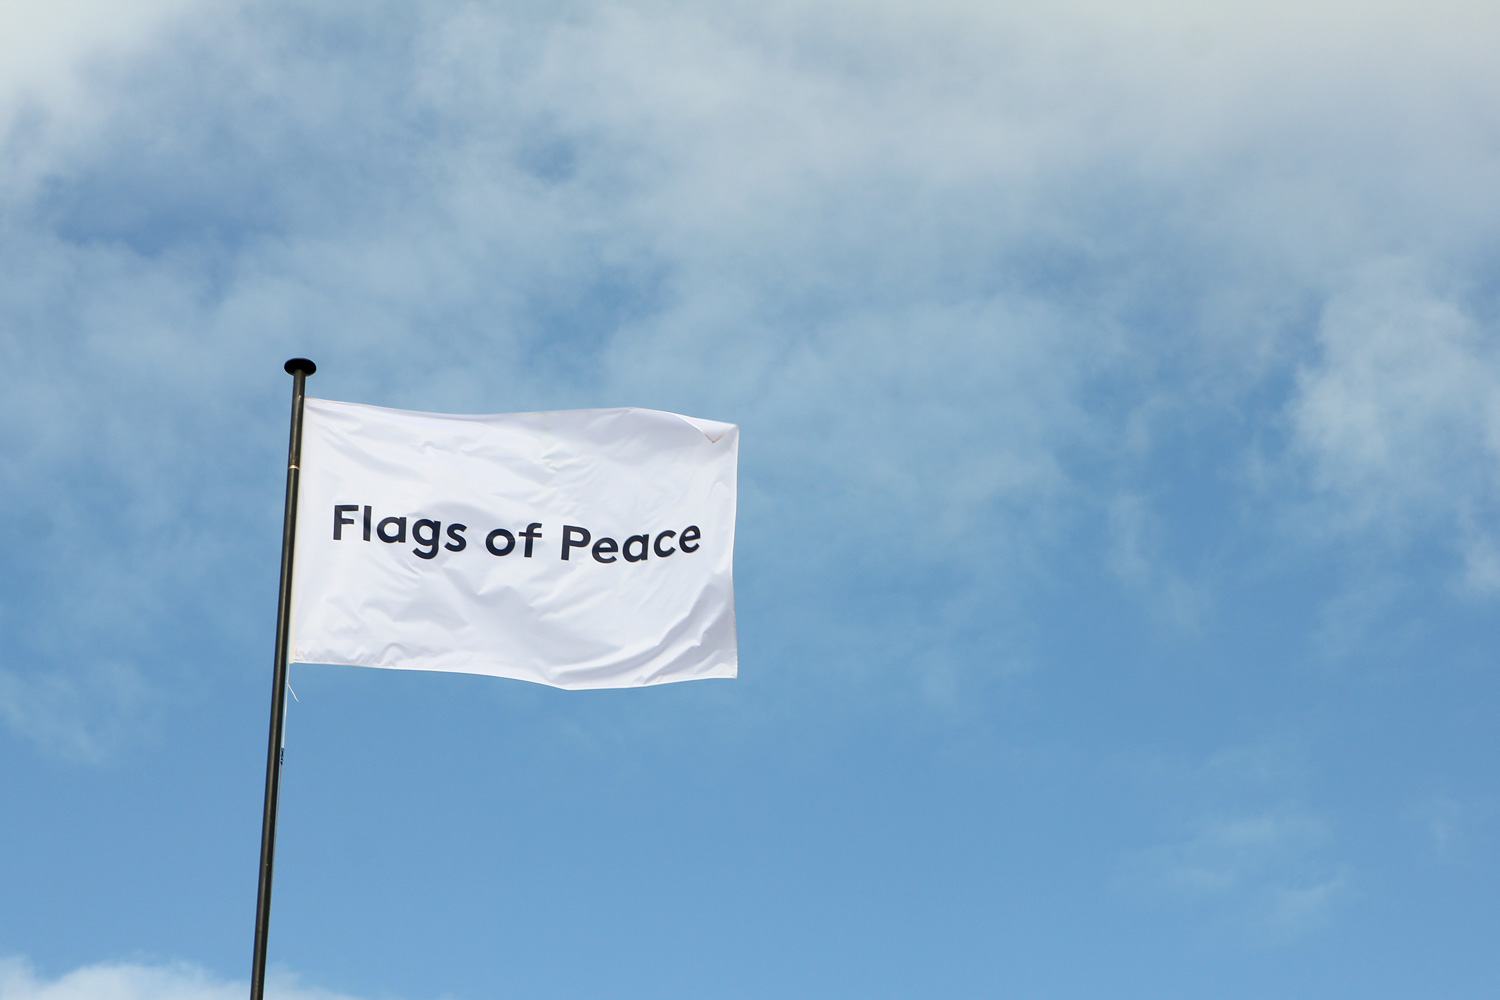 Flags of peace creating an international visual dialogue on peace from 16th june until 22nd october 2017 flags of peace will be exhibited in breda the netherlands during the 350 year celebration of vrede van breda biocorpaavc Image collections